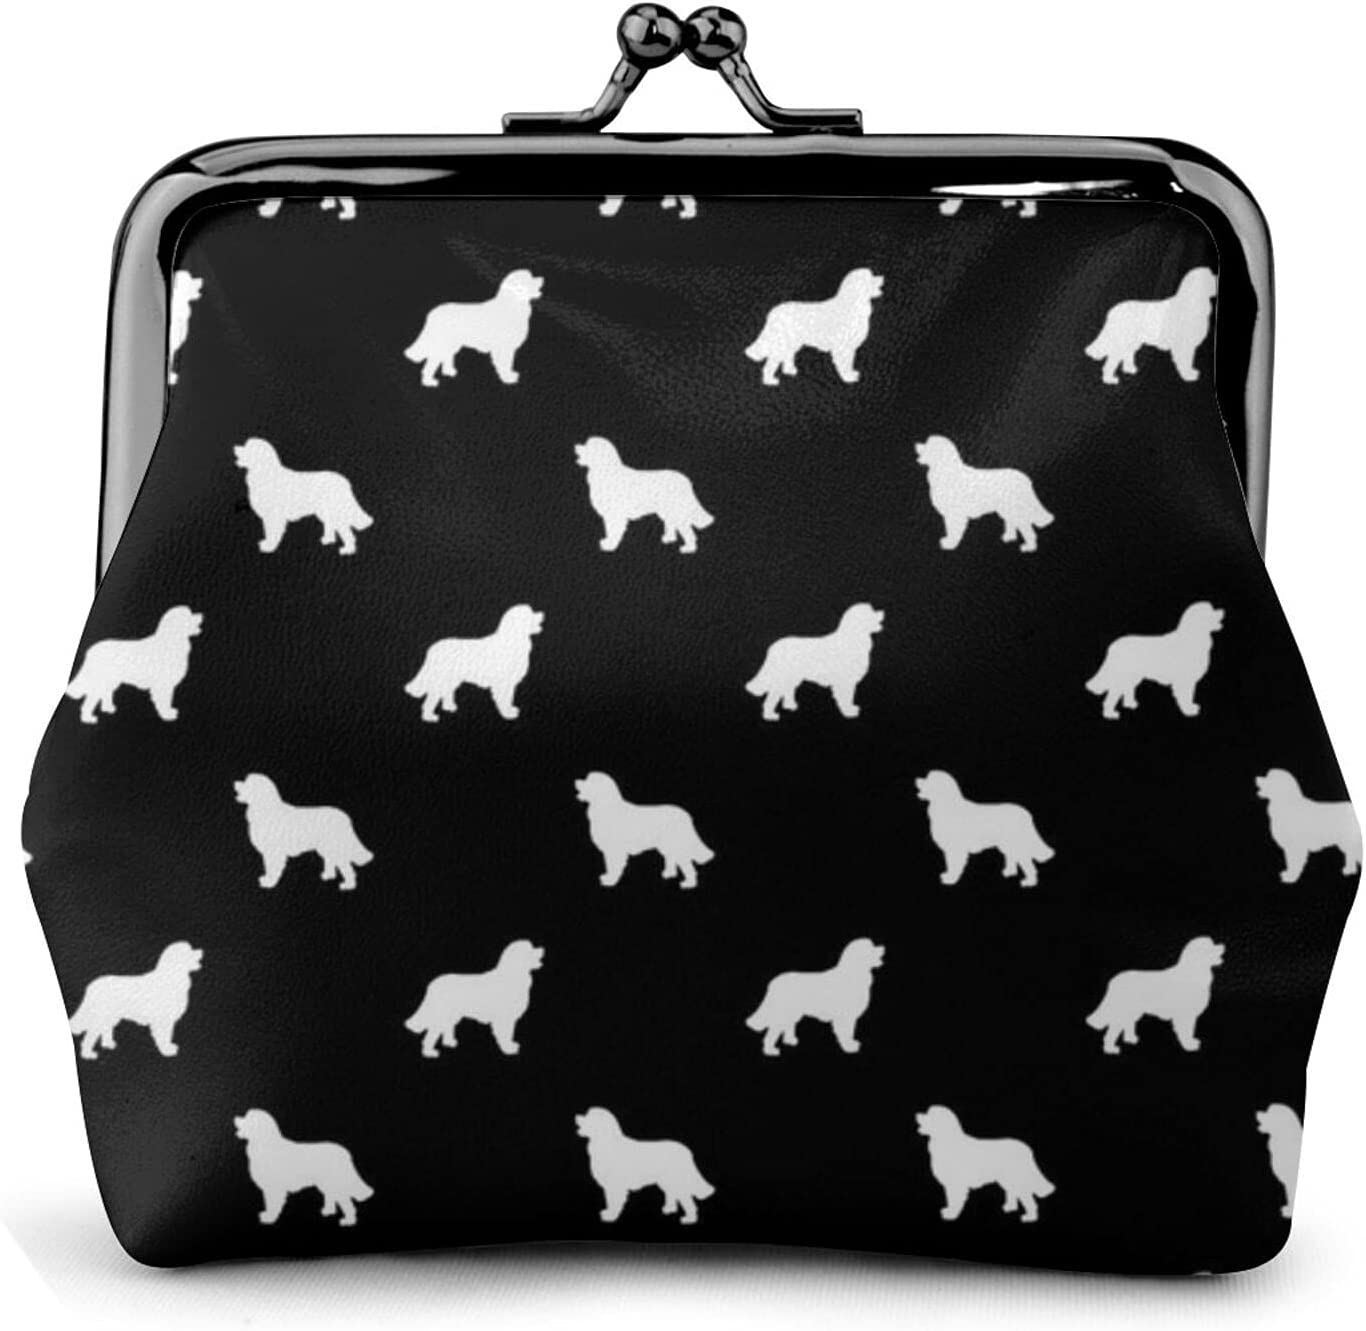 Bernese Mountain Dog 441 Coin Purse Retro Money Pouch with Kiss-lock Buckle Small Wallet for Women and Girls